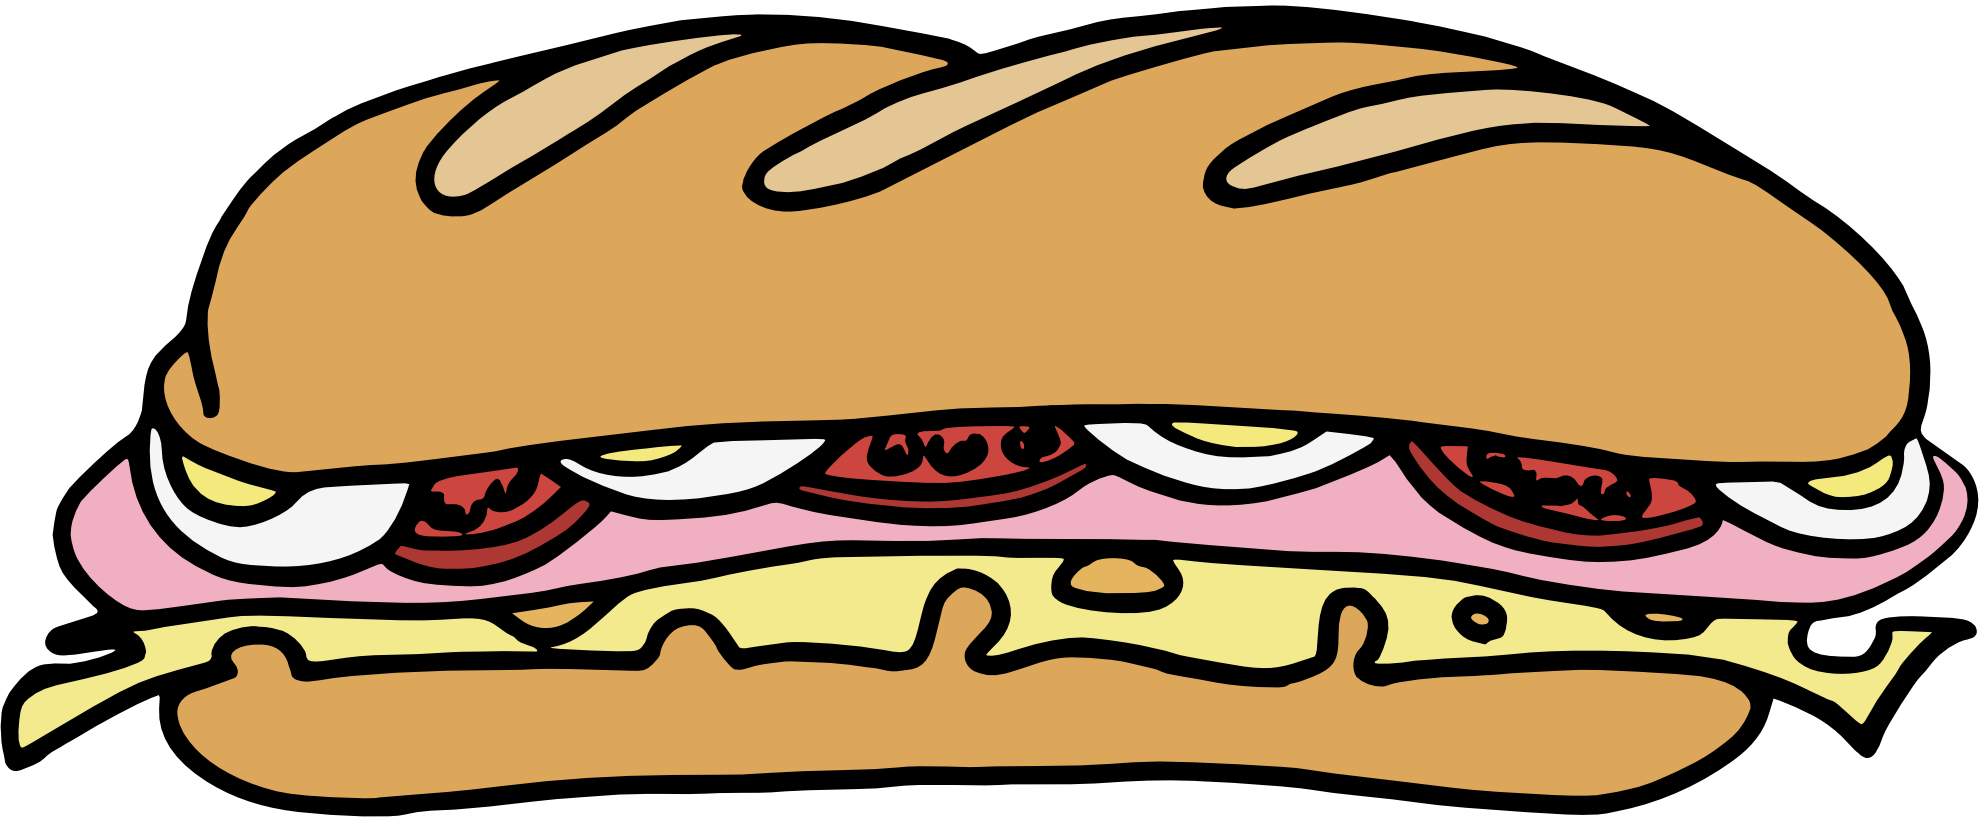 Black and white hoagie clipart.